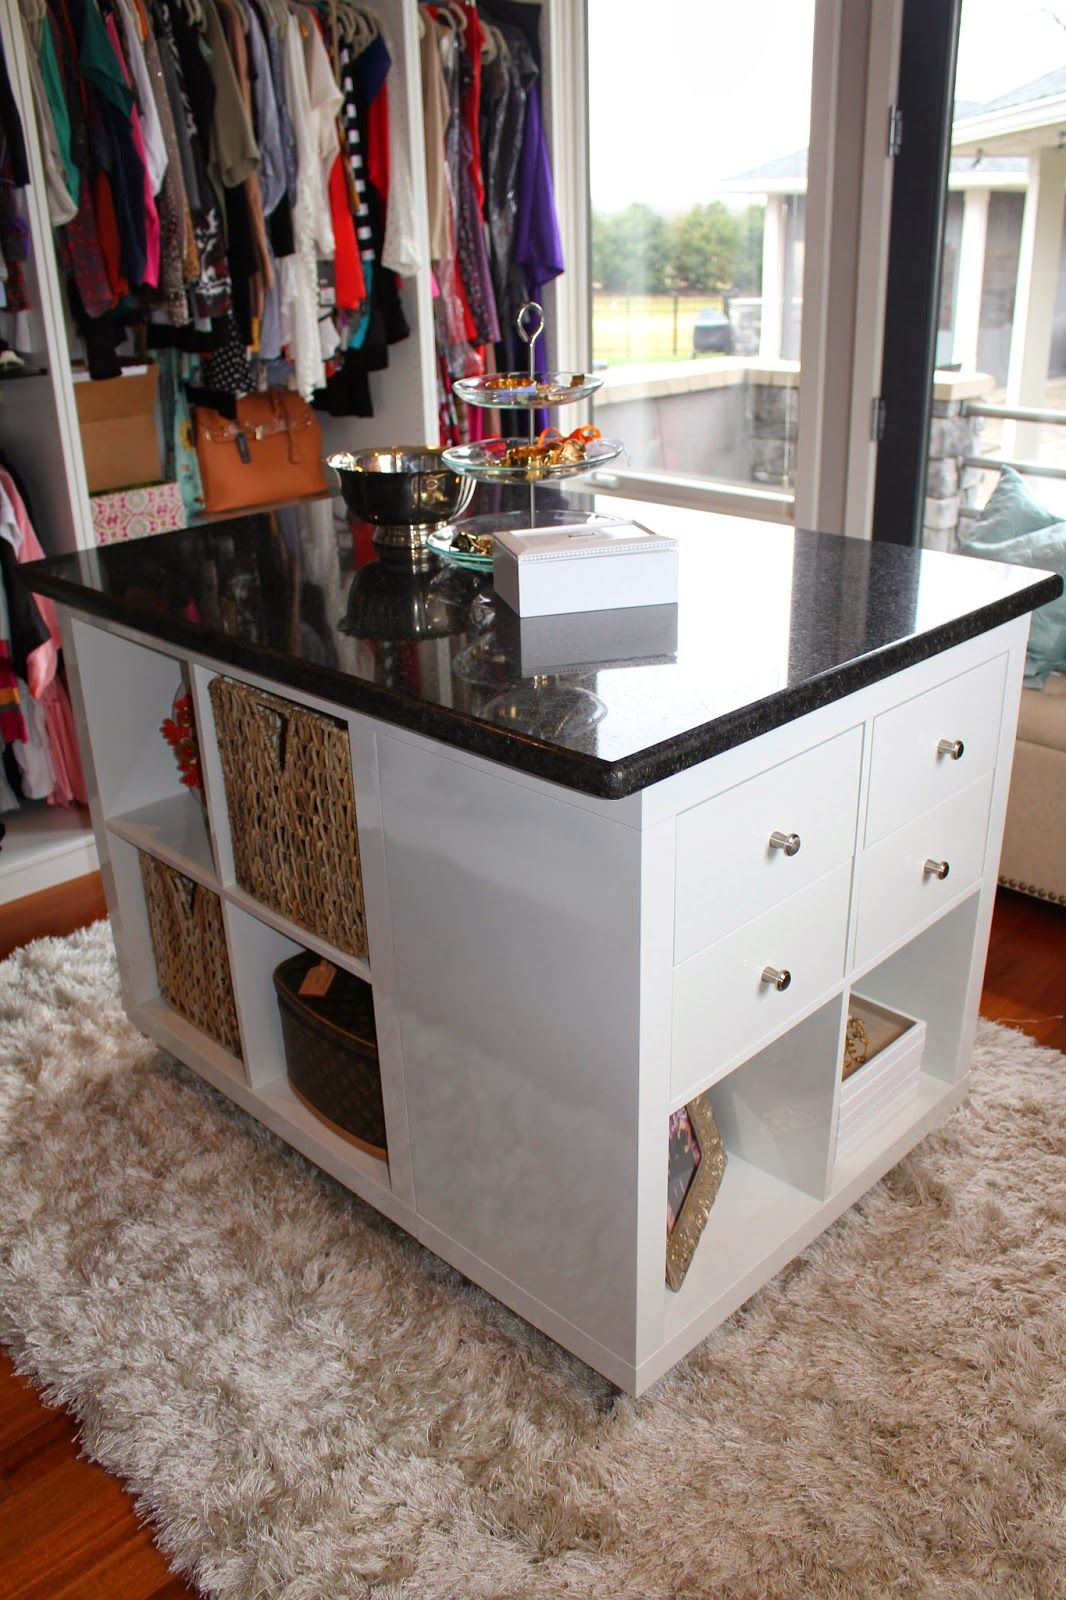 Ikea Hacks Küchentheke 25 Genius Ikea Table Hacks Pinterest Closet Island Ikea Hack